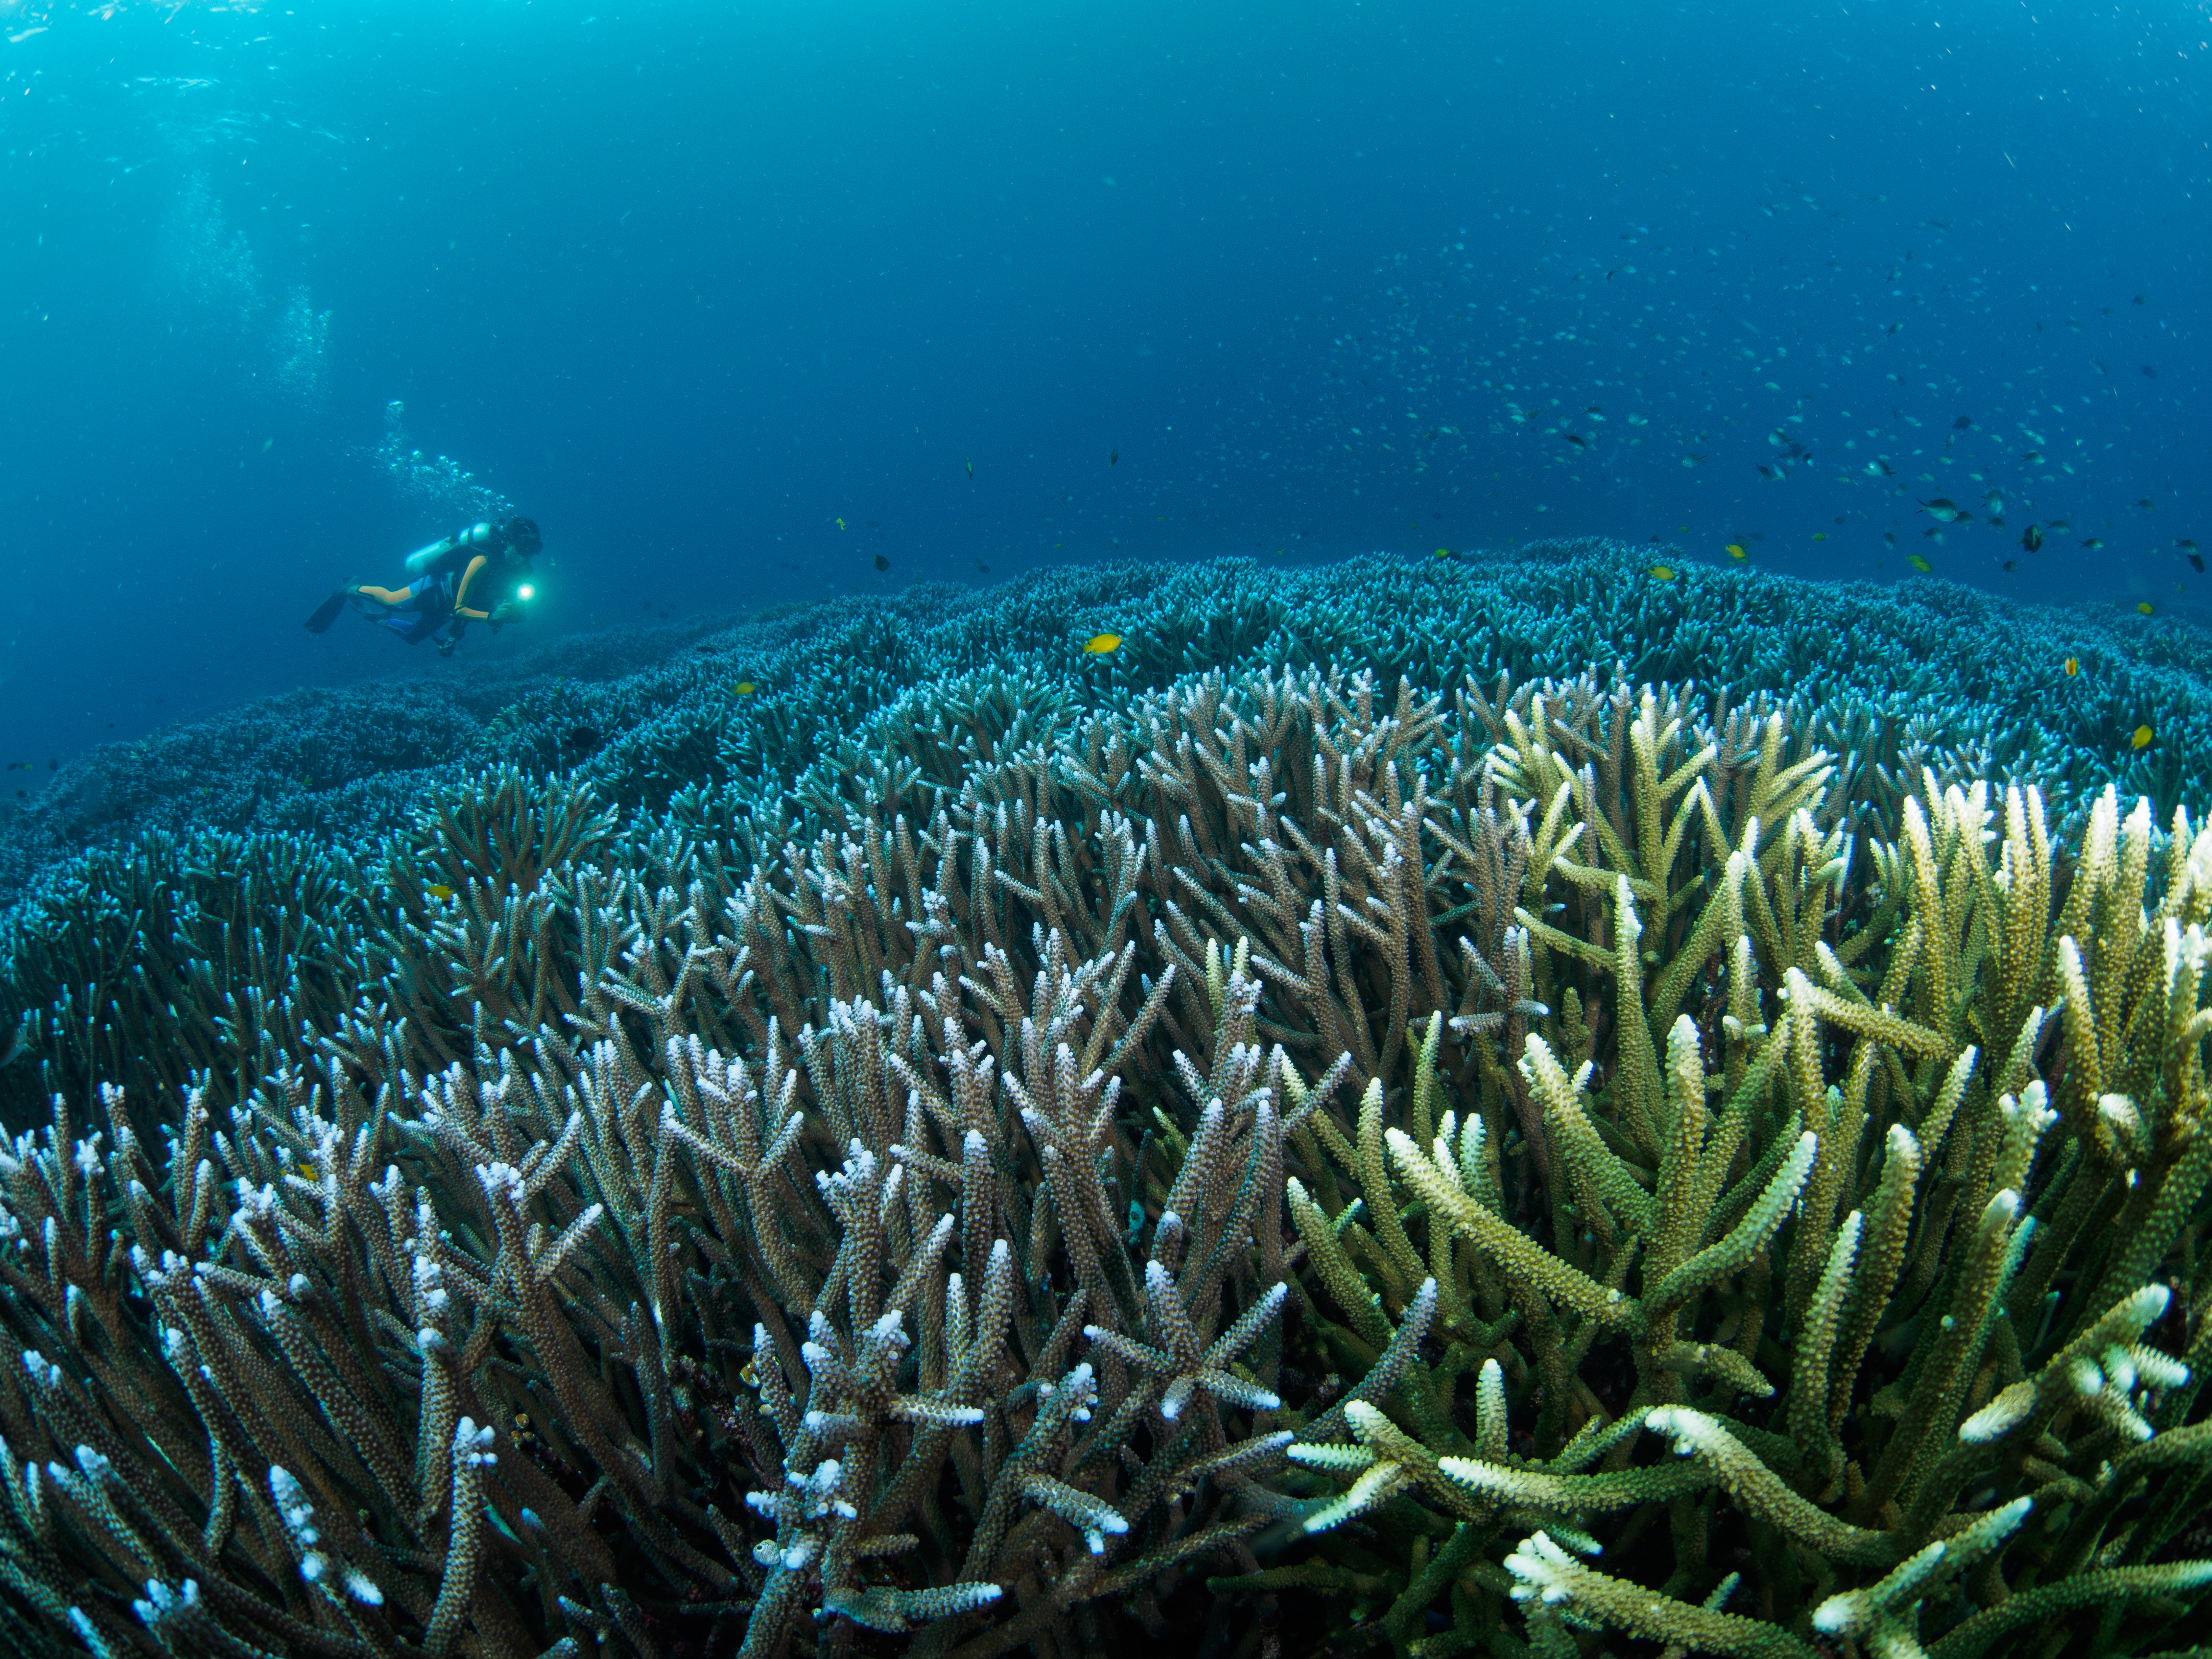 An incredible photo of the underwater landscape in Indonesia.